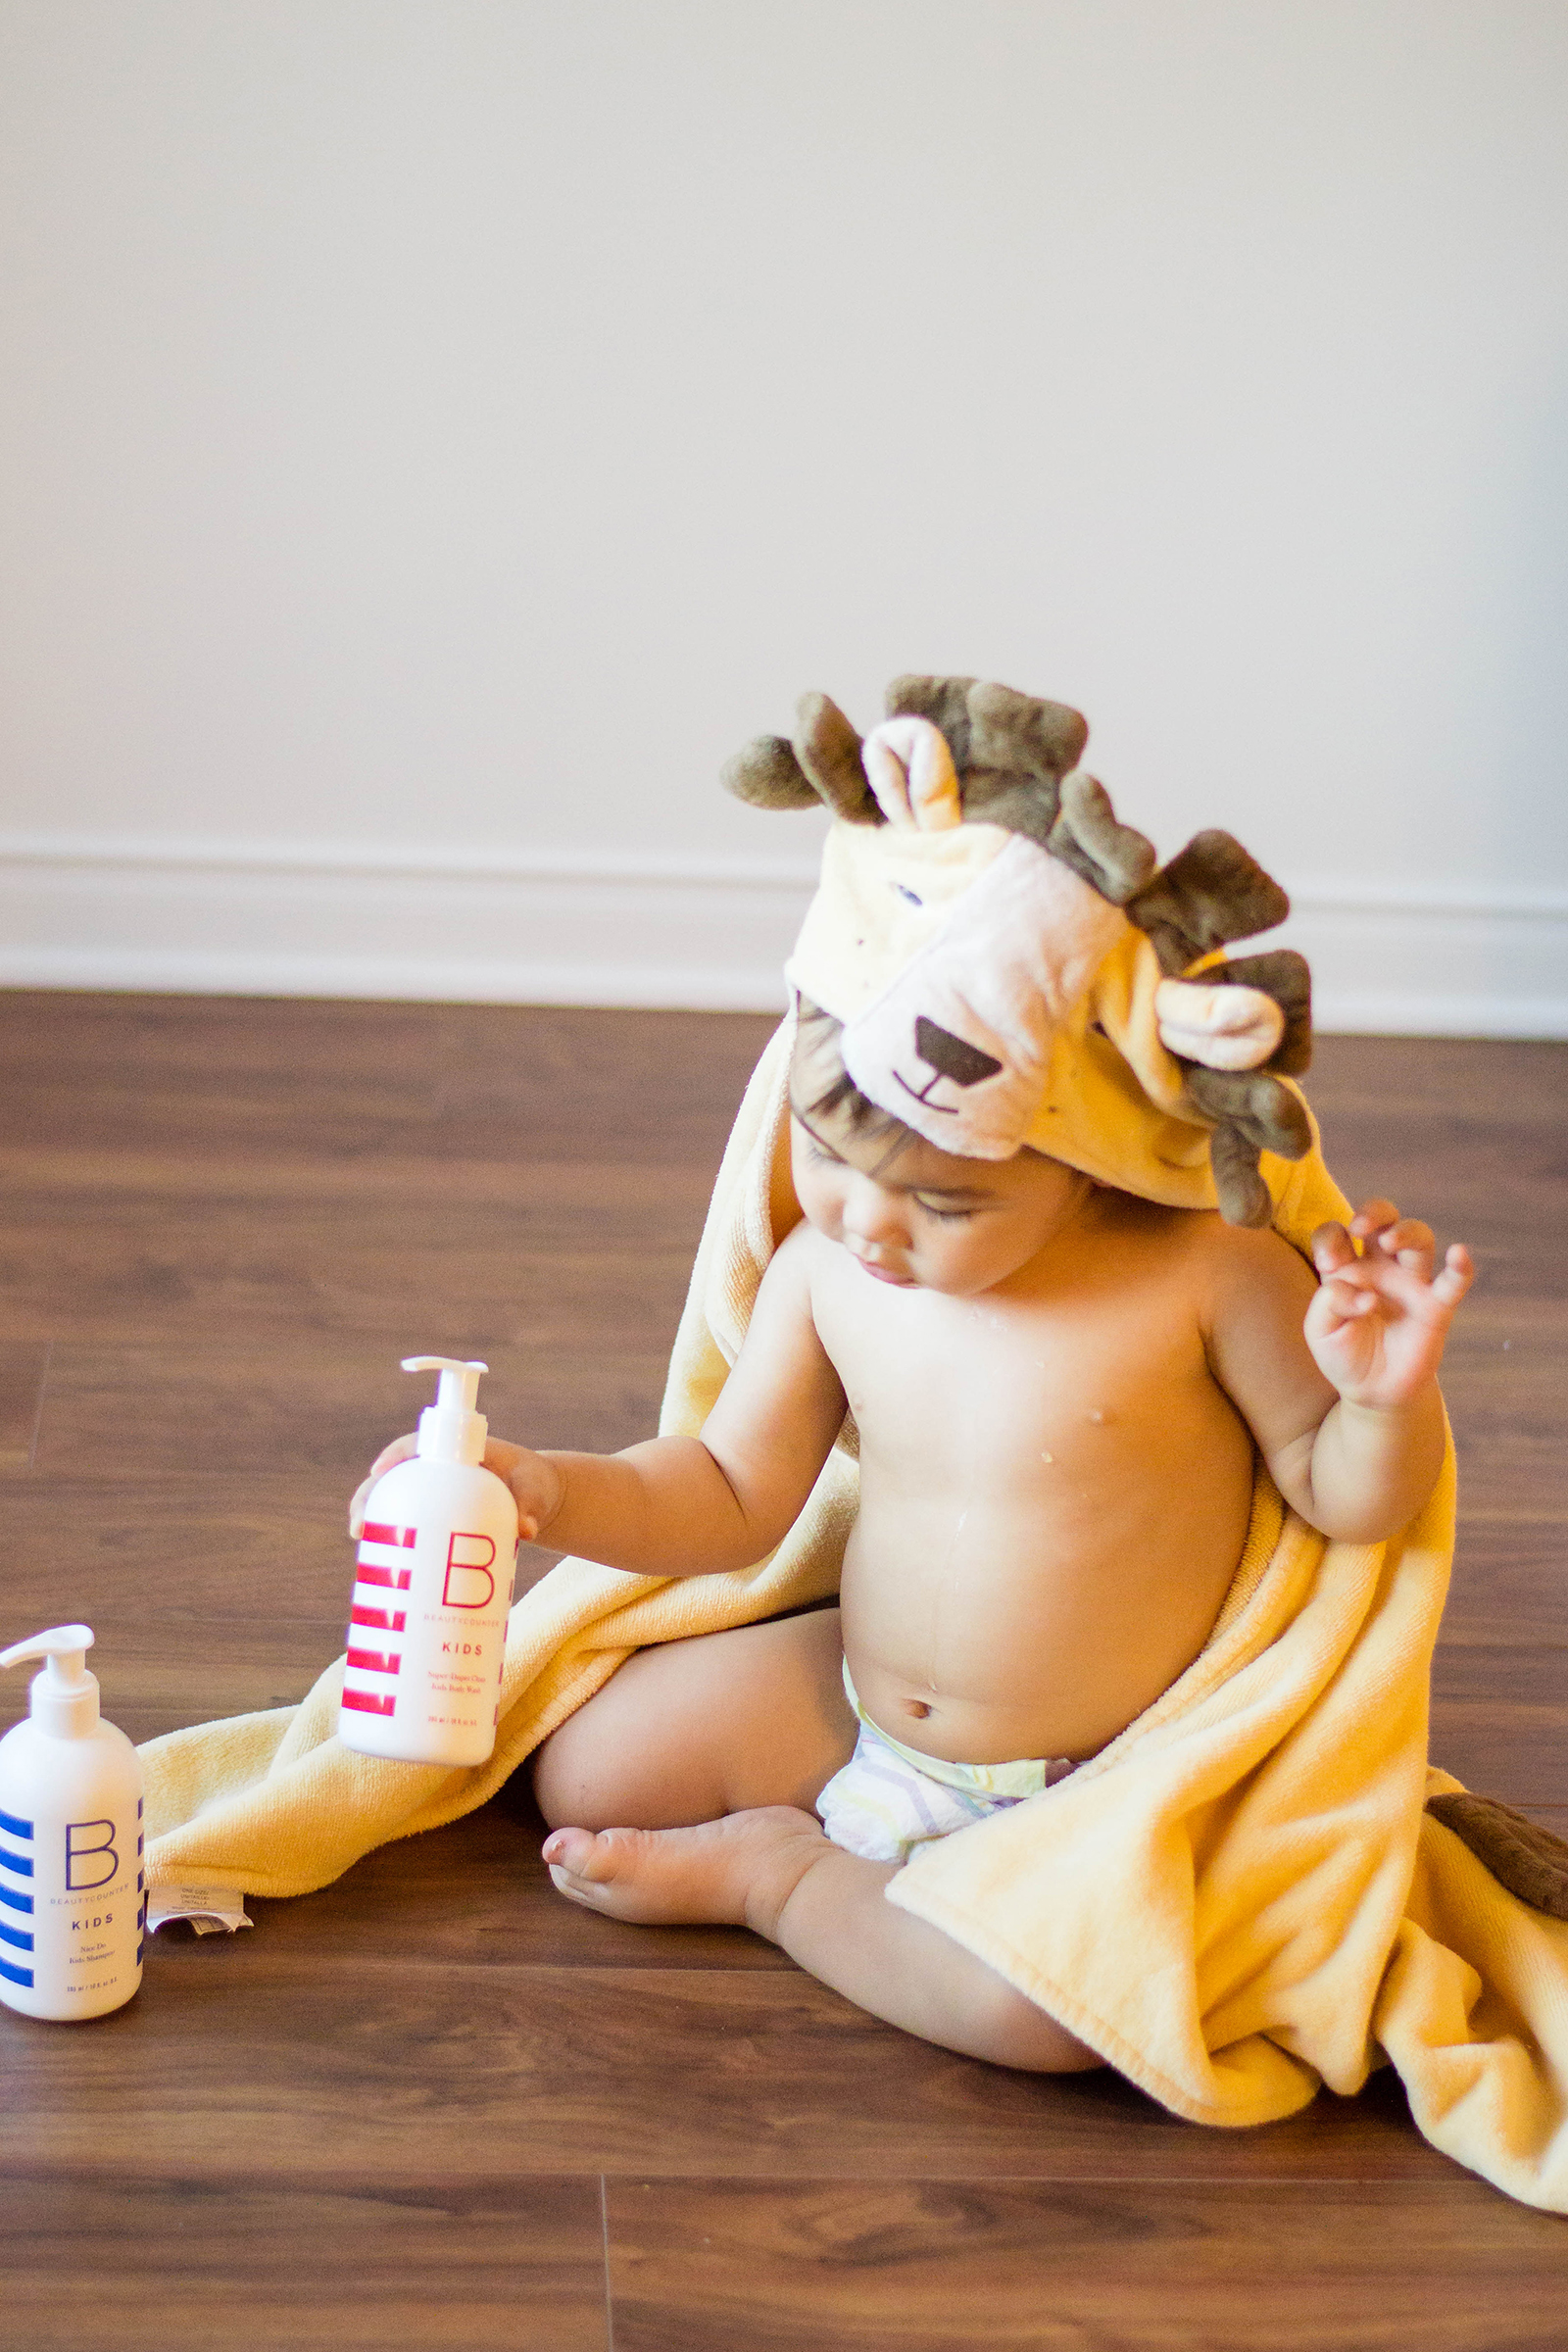 Our New Home: How to Organize Bathtime with Toddlers